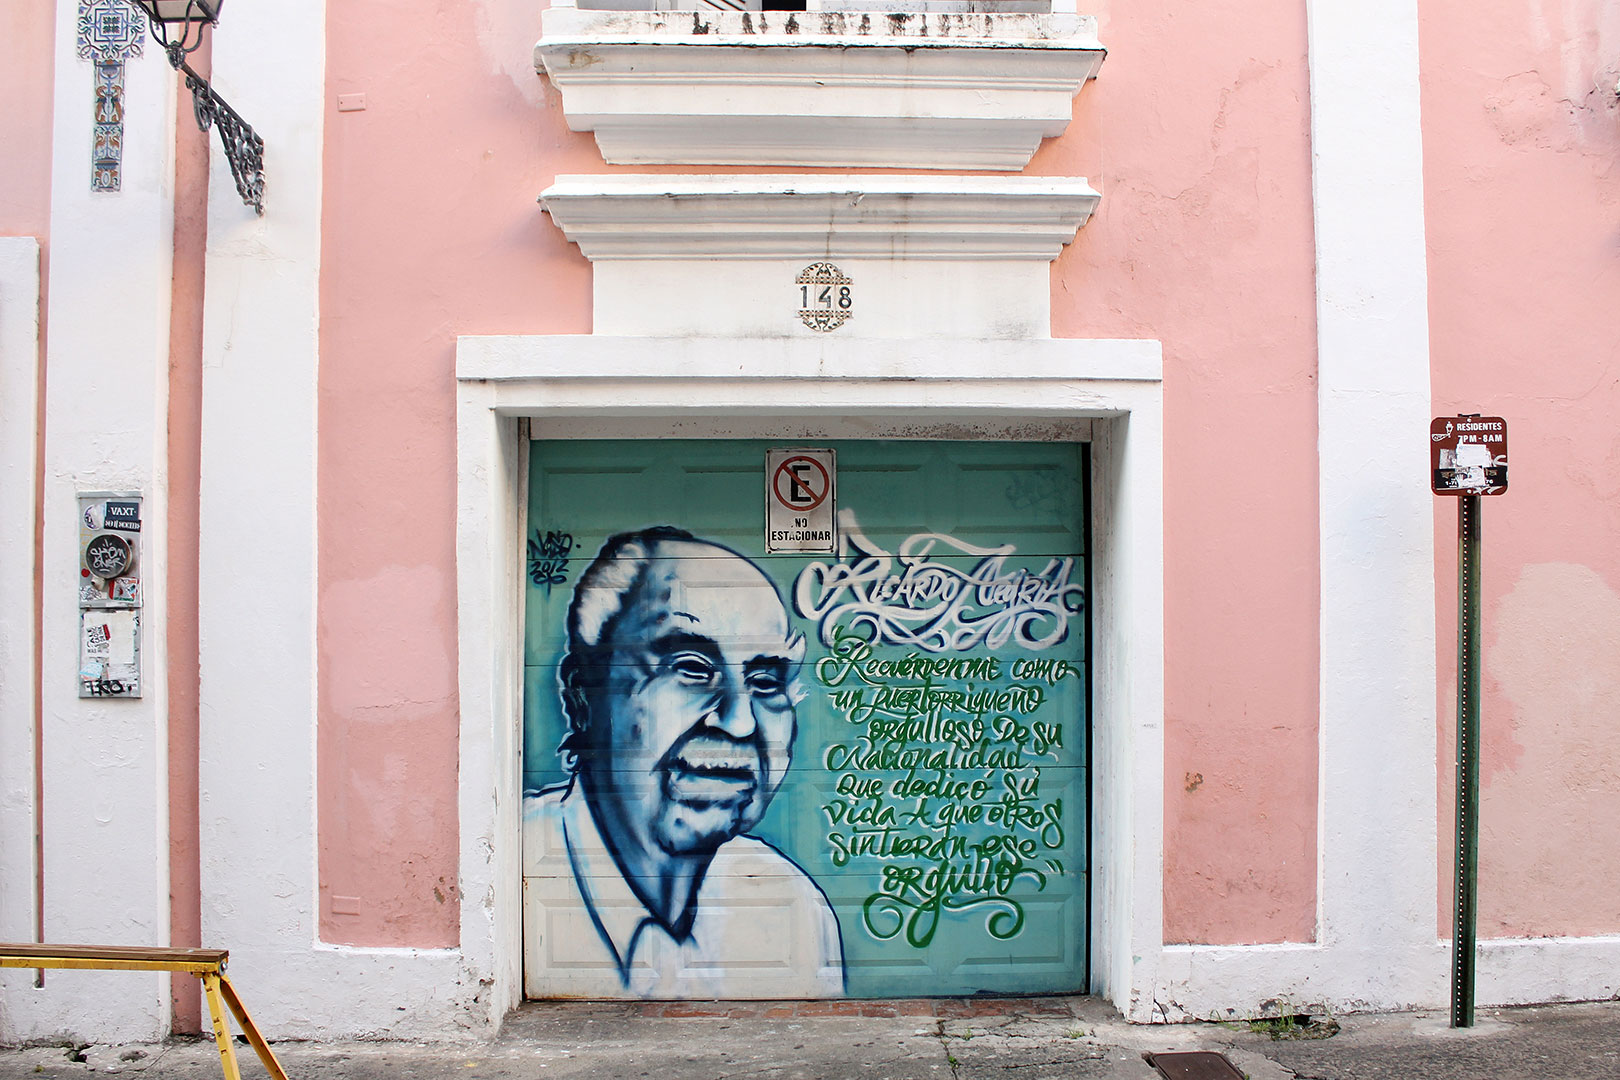 This is a mural of the beloved Ricardo Alegría, who was primarily responsible for restoring and renovating historical Old San Juan. Alegria was also a Puerto Rican archaeologist, and cultural anthropologist.